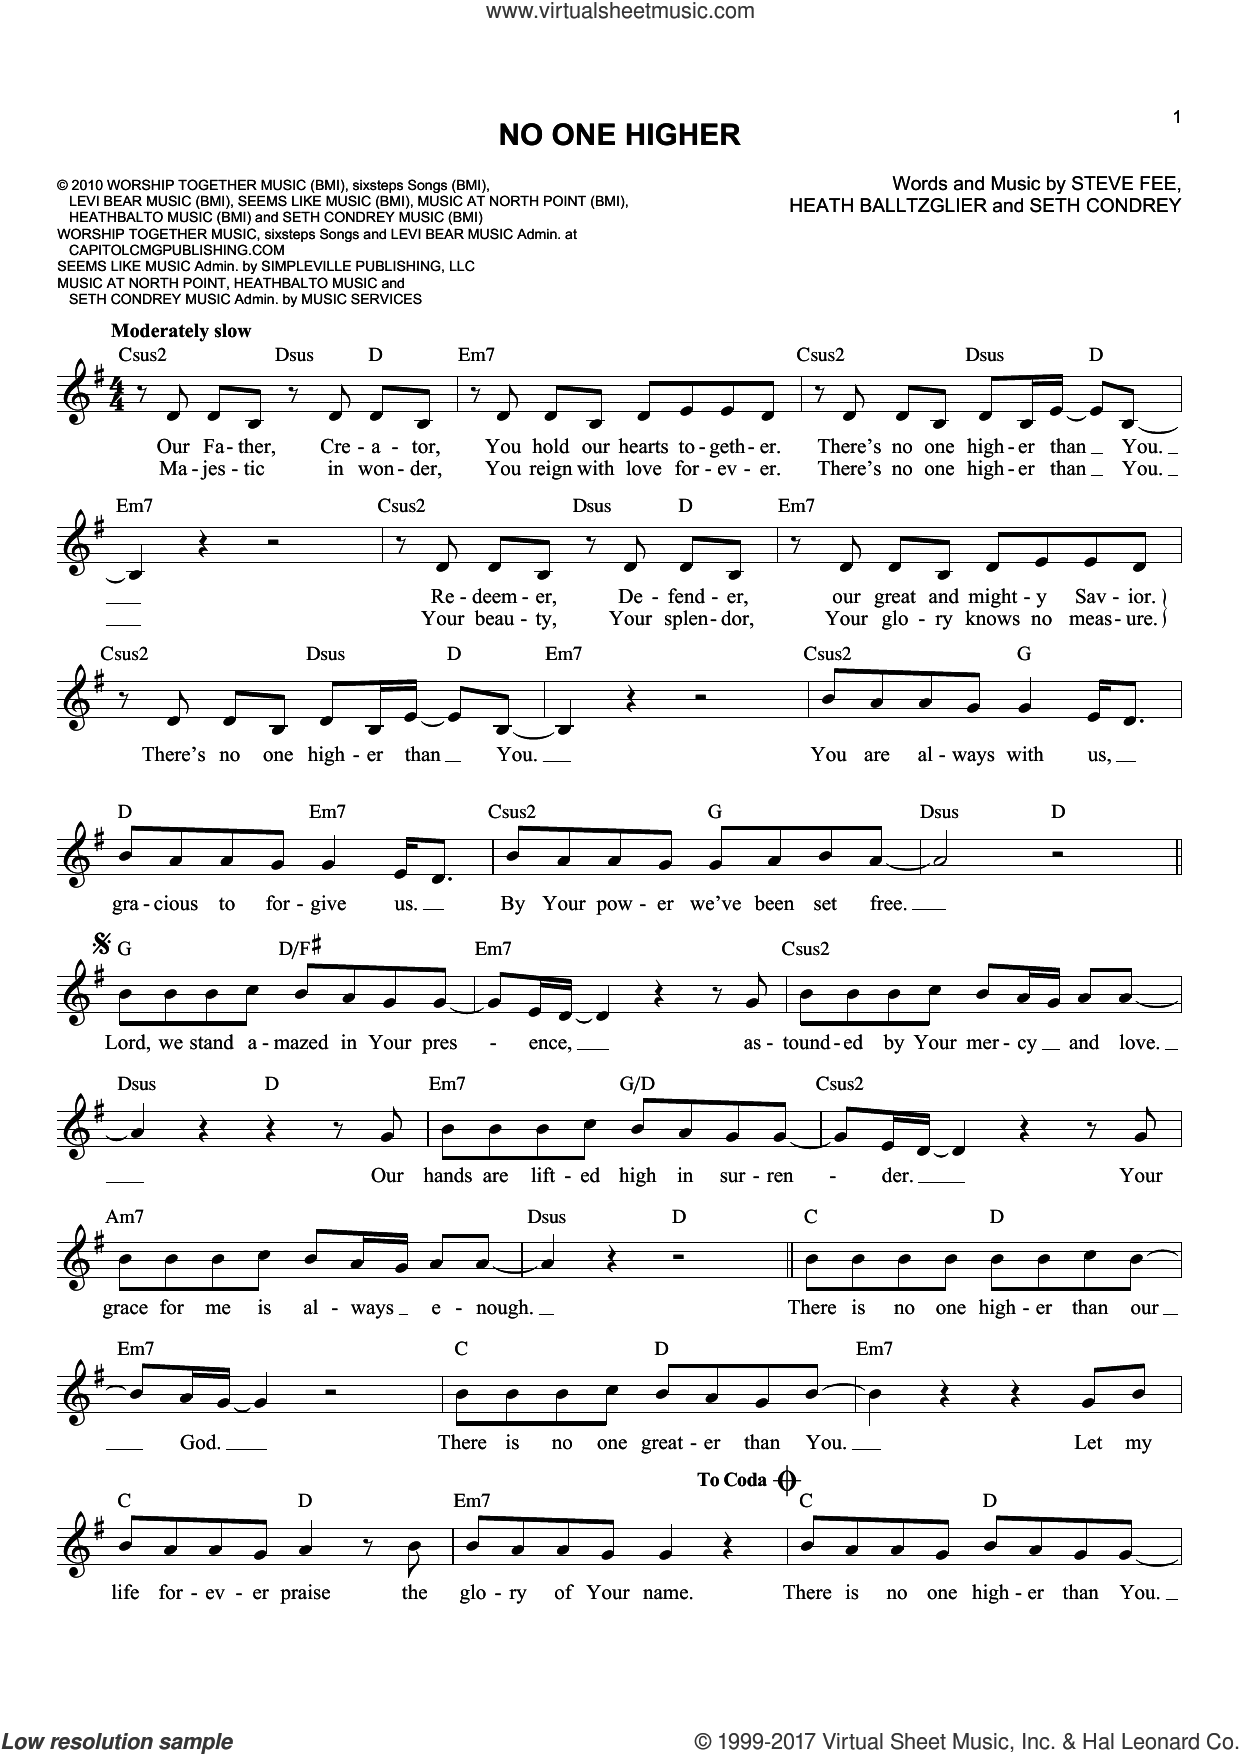 No One Higher sheet music for voice and other instruments (fake book) by Heath Balltzglier, Seth Condrey and Steve Fee, intermediate skill level